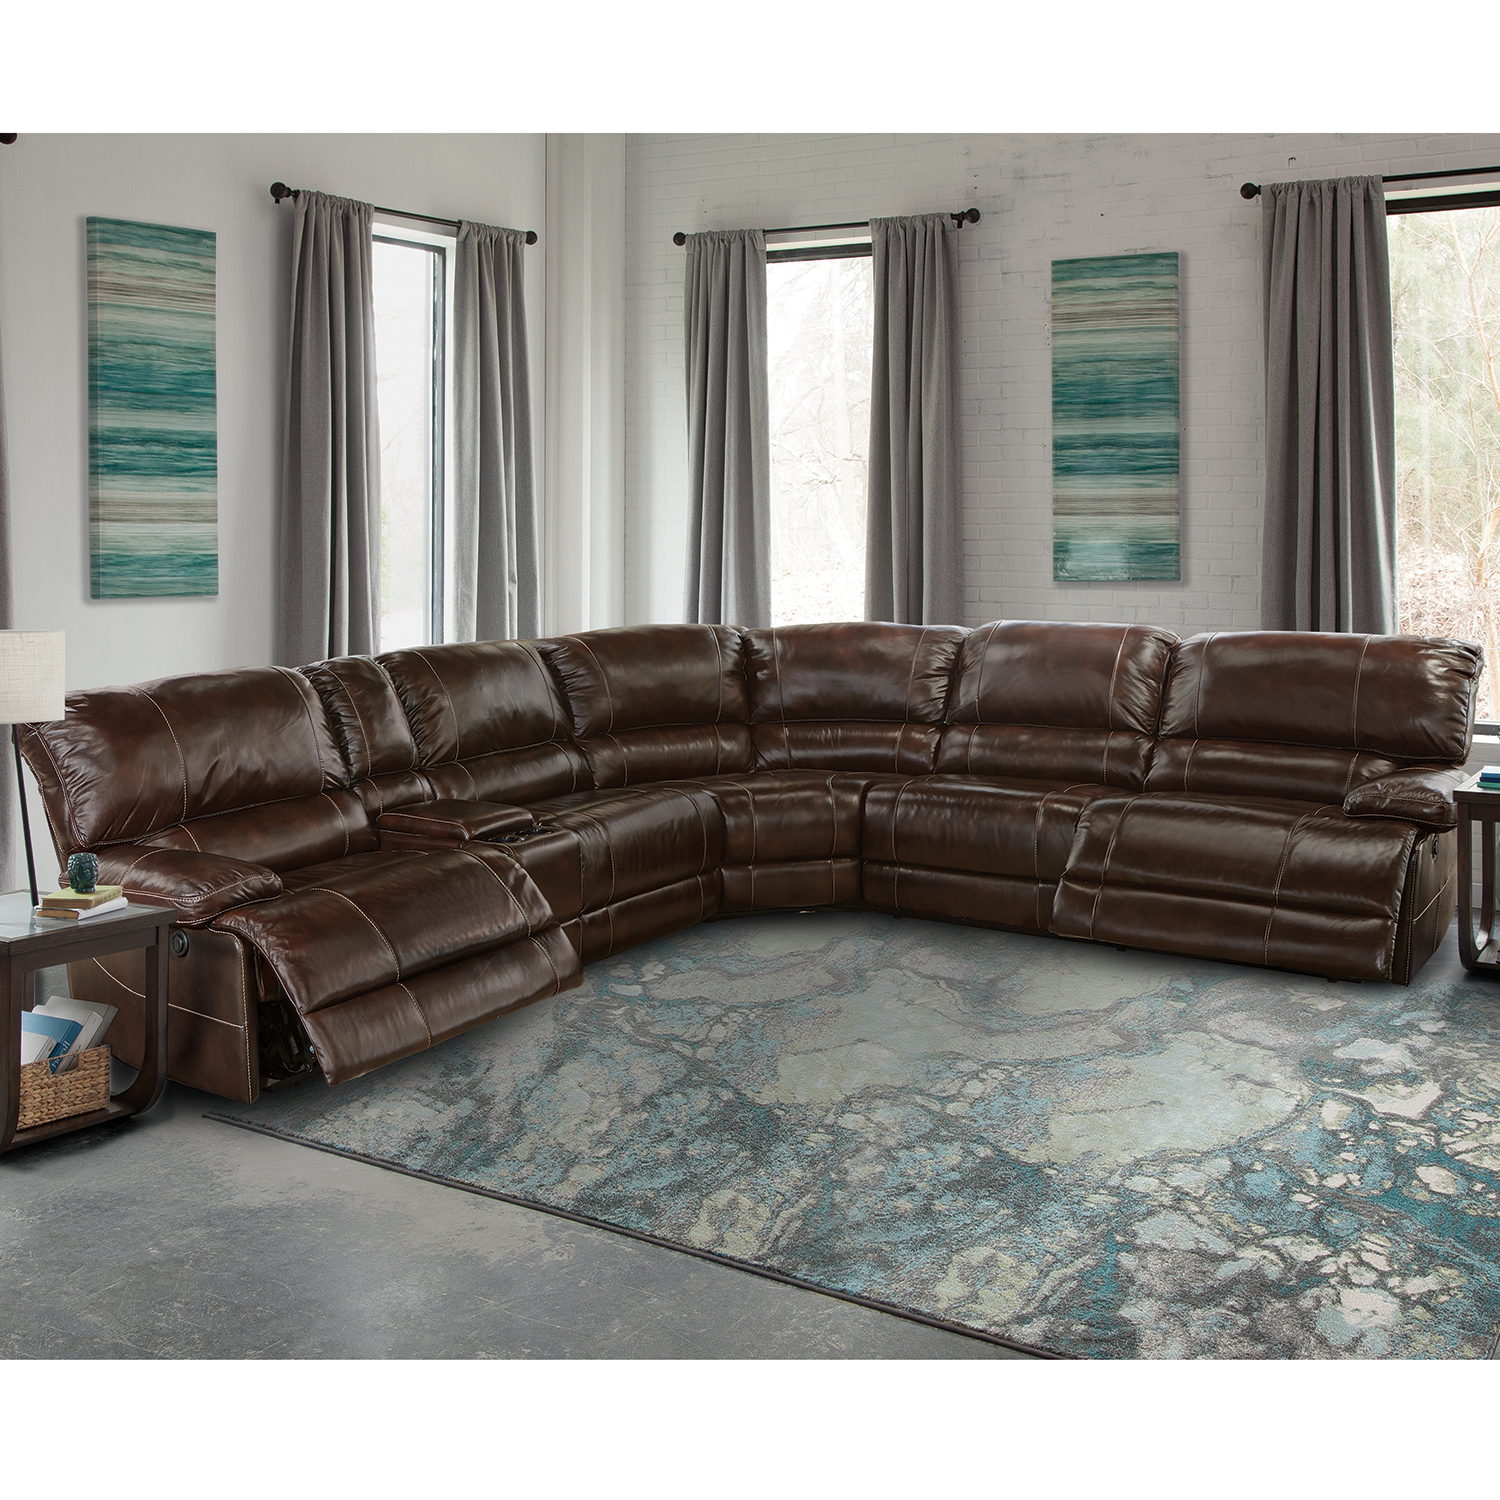 Summerbridge 6 Pc Leather Sectional Sofa – Sofa Design Ideas Throughout Best And Newest Travis Cognac Leather 6 Piece Power Reclining Sectionals With Power Headrest & Usb (Gallery 16 of 20)